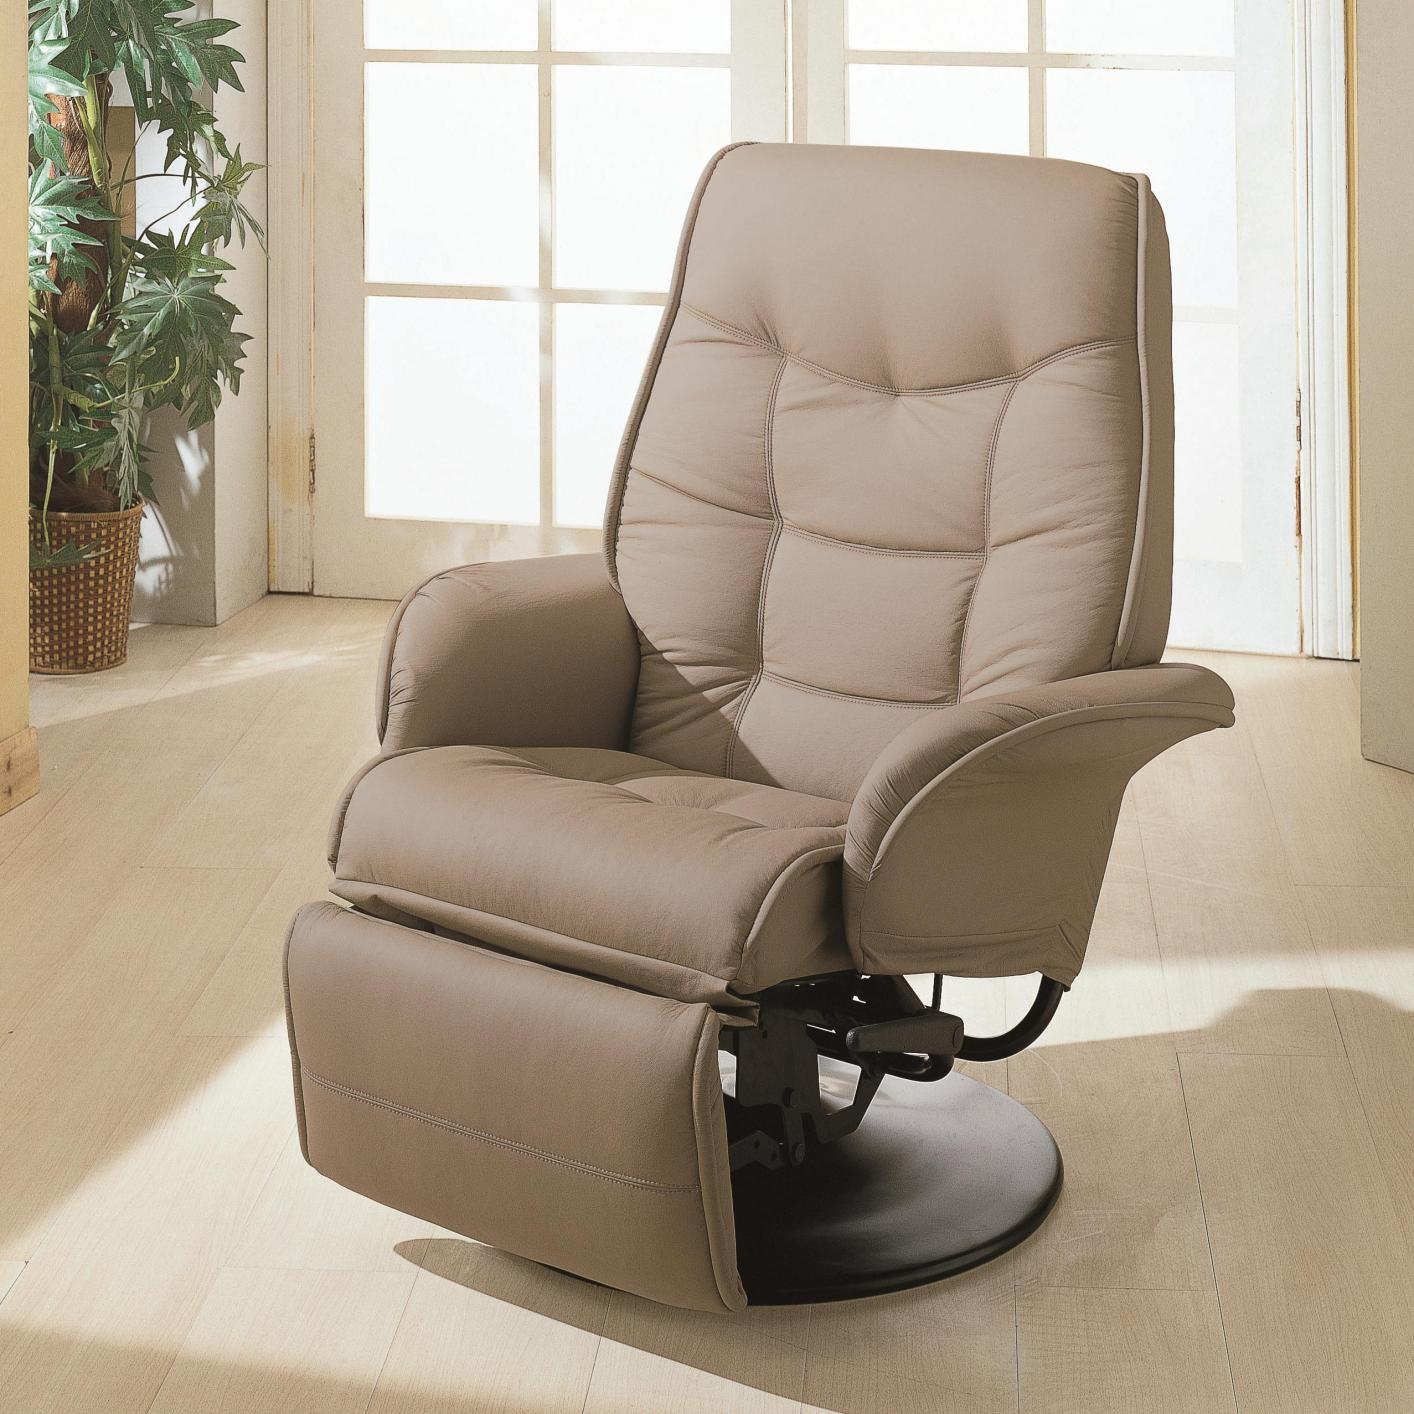 Beige Leather Reclining Chair Beige Leather Reclining Chair ... & Beige Leather Reclining Chair - Steal-A-Sofa Furniture Outlet Los ... islam-shia.org